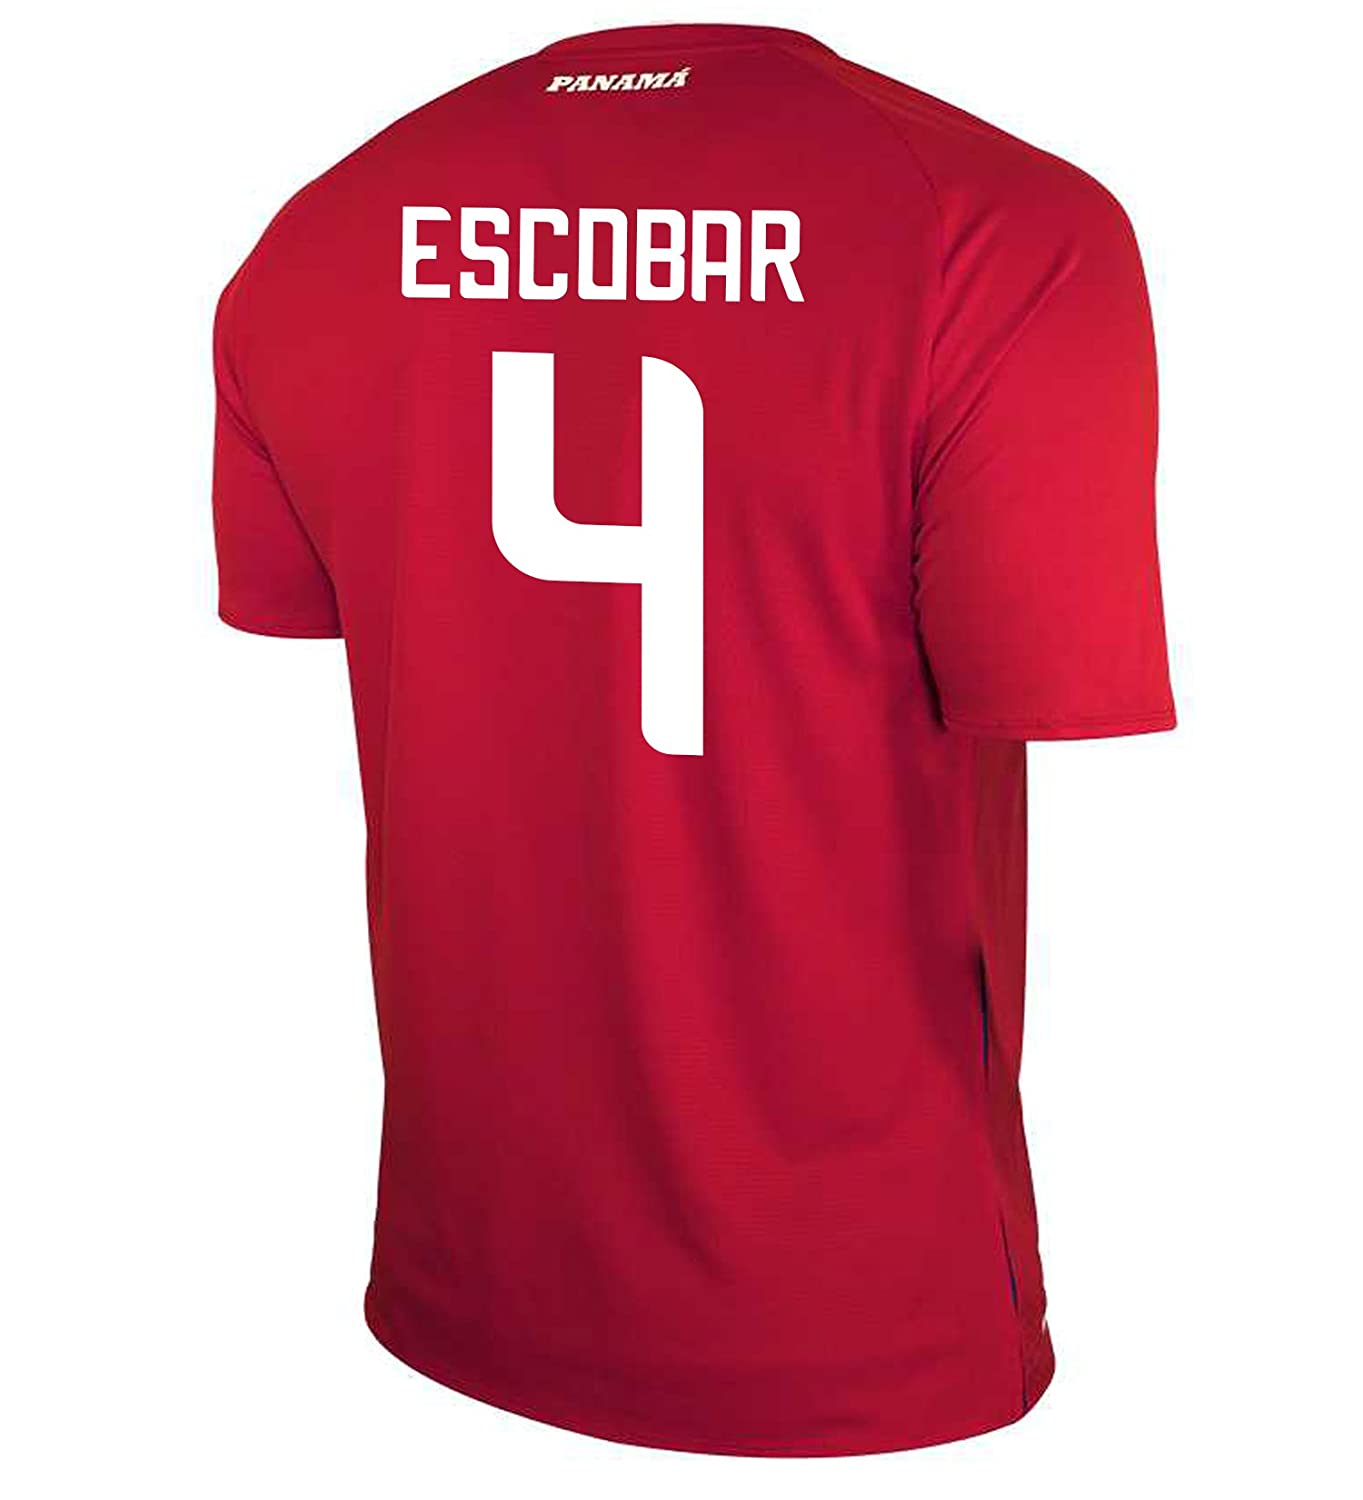 New Balance Men's ESCOBAR #4 Panama Home Soccer Jersey FIFA World Cup Russia 2018/サッカーユニフォーム パナマ ホーム用 エスコバル #4 B07D3DFDRF US Small